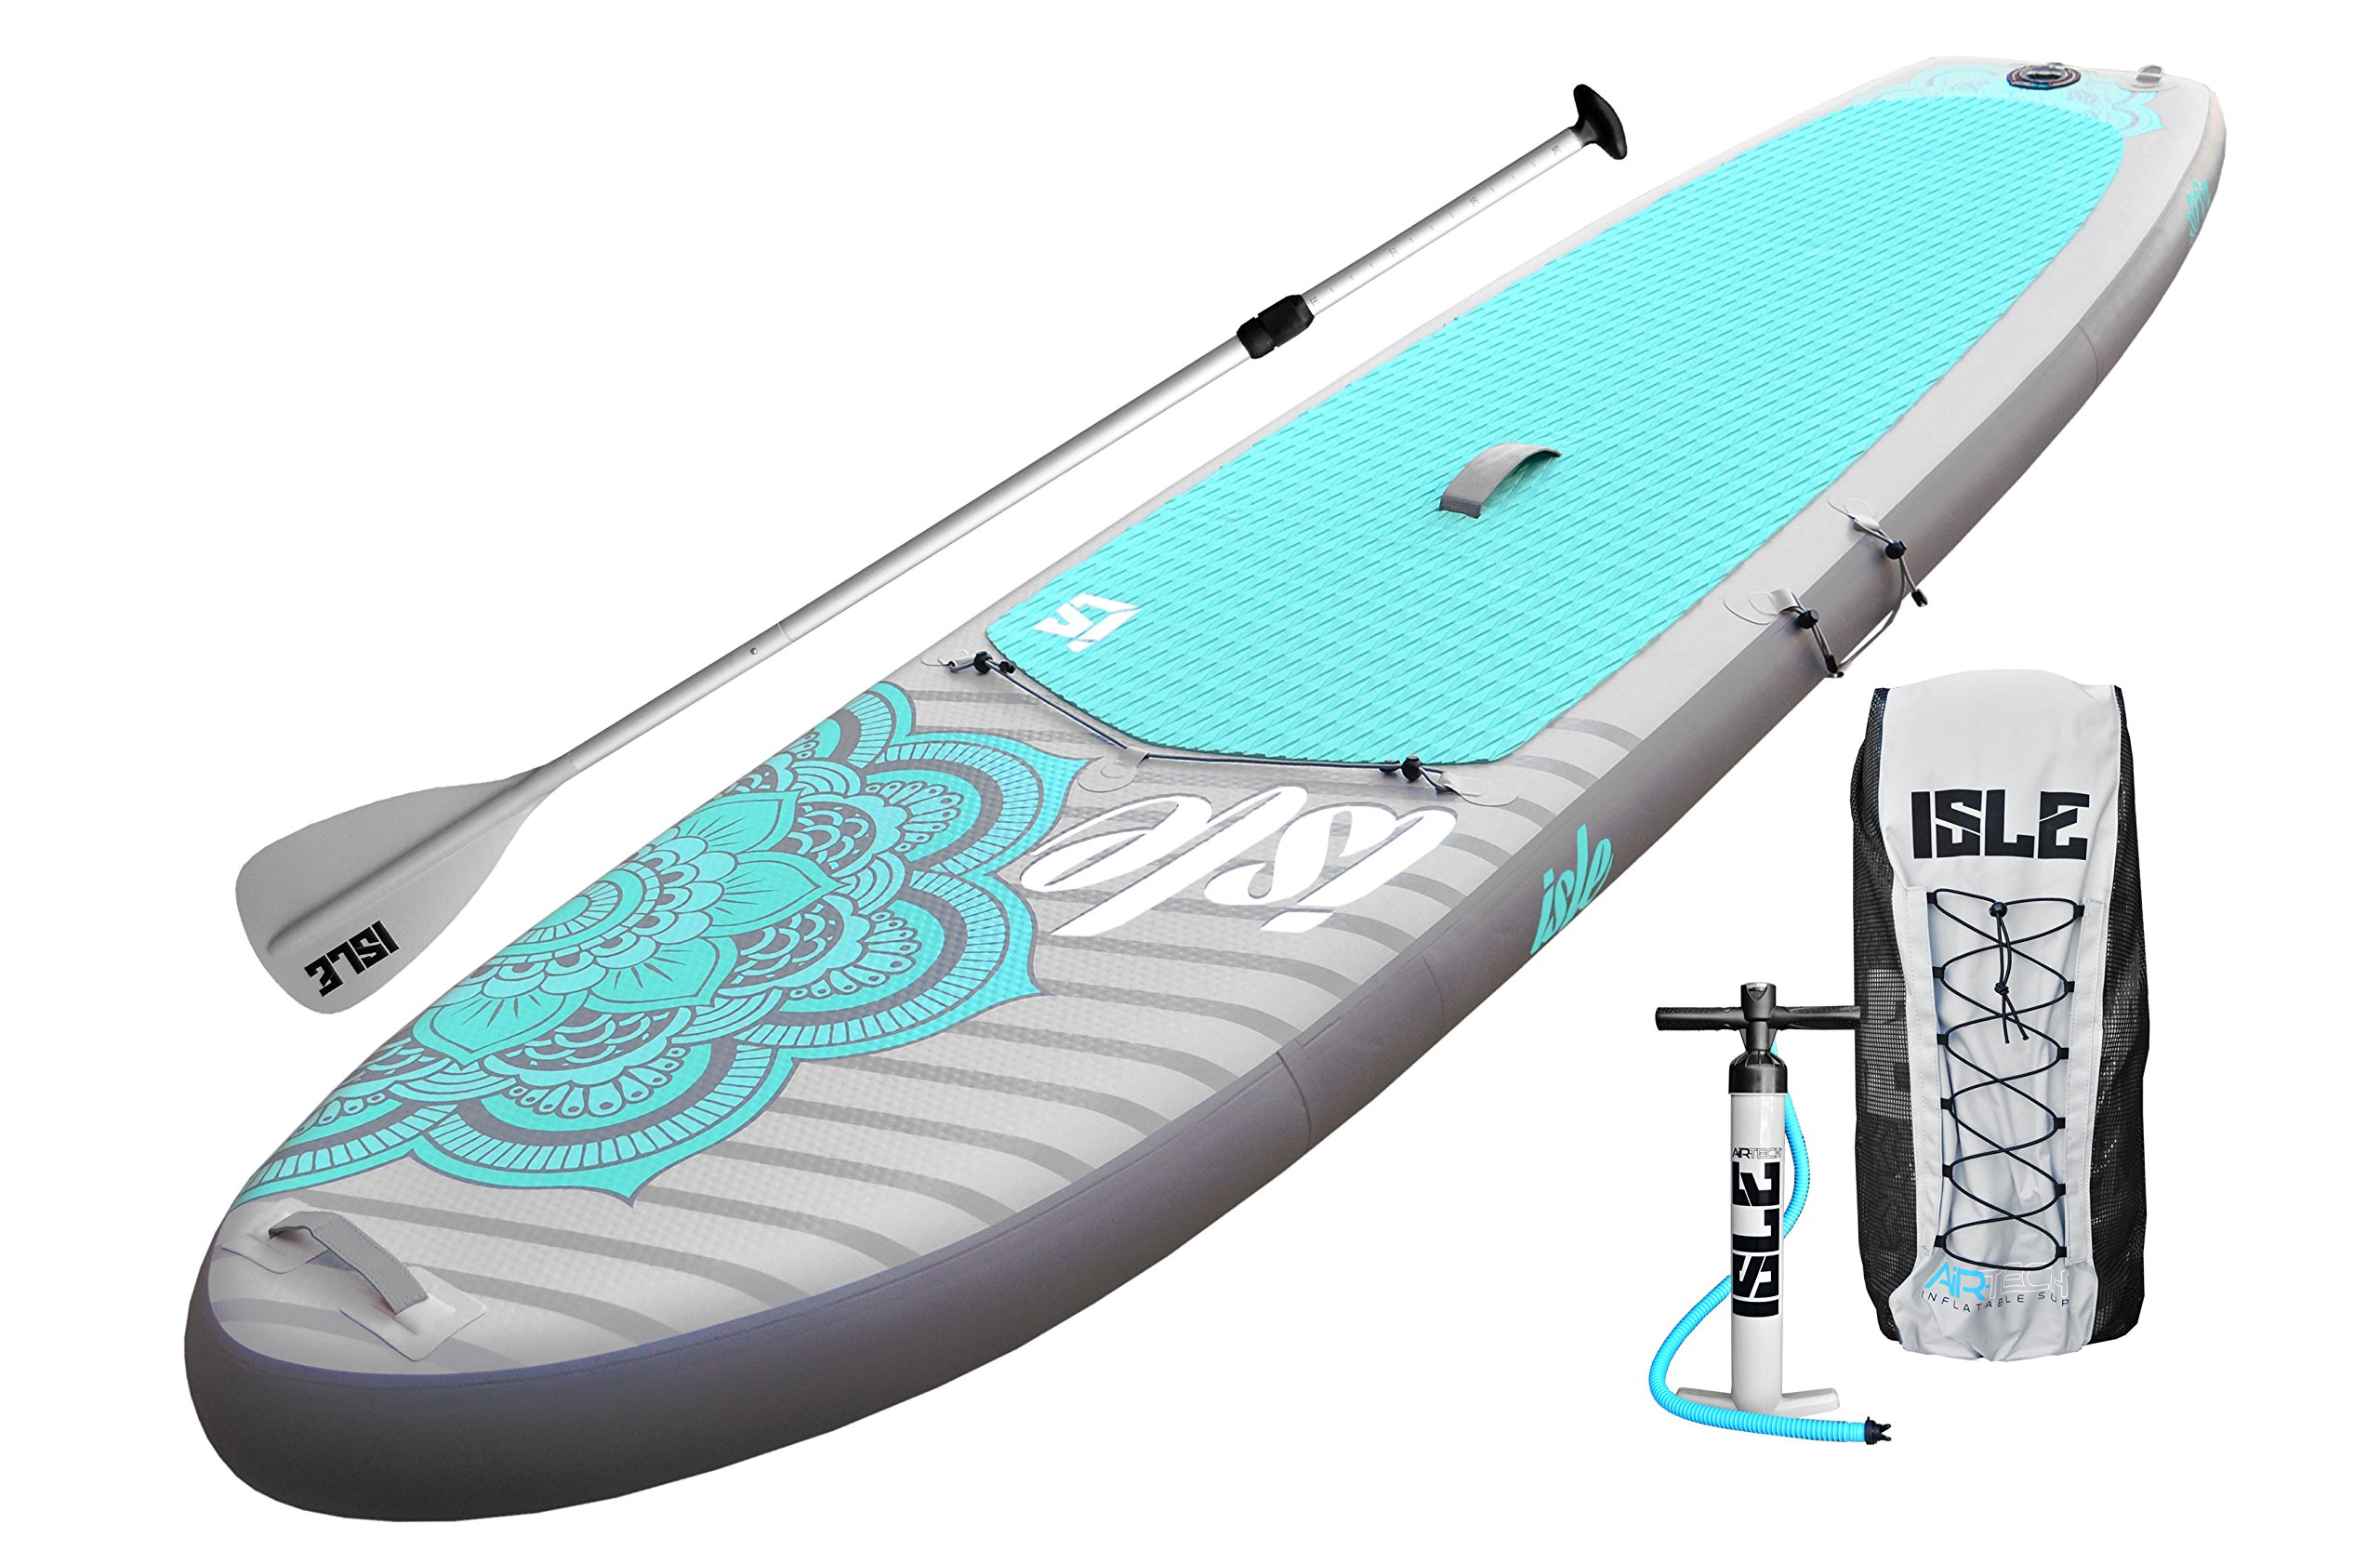 ISLE 10'4 Airtech Inflatable Yoga Stand Up Paddle Board (6'' Thick) iSUP Package | Includes Adjustable Travel Paddle, Carrying Bag, Pump